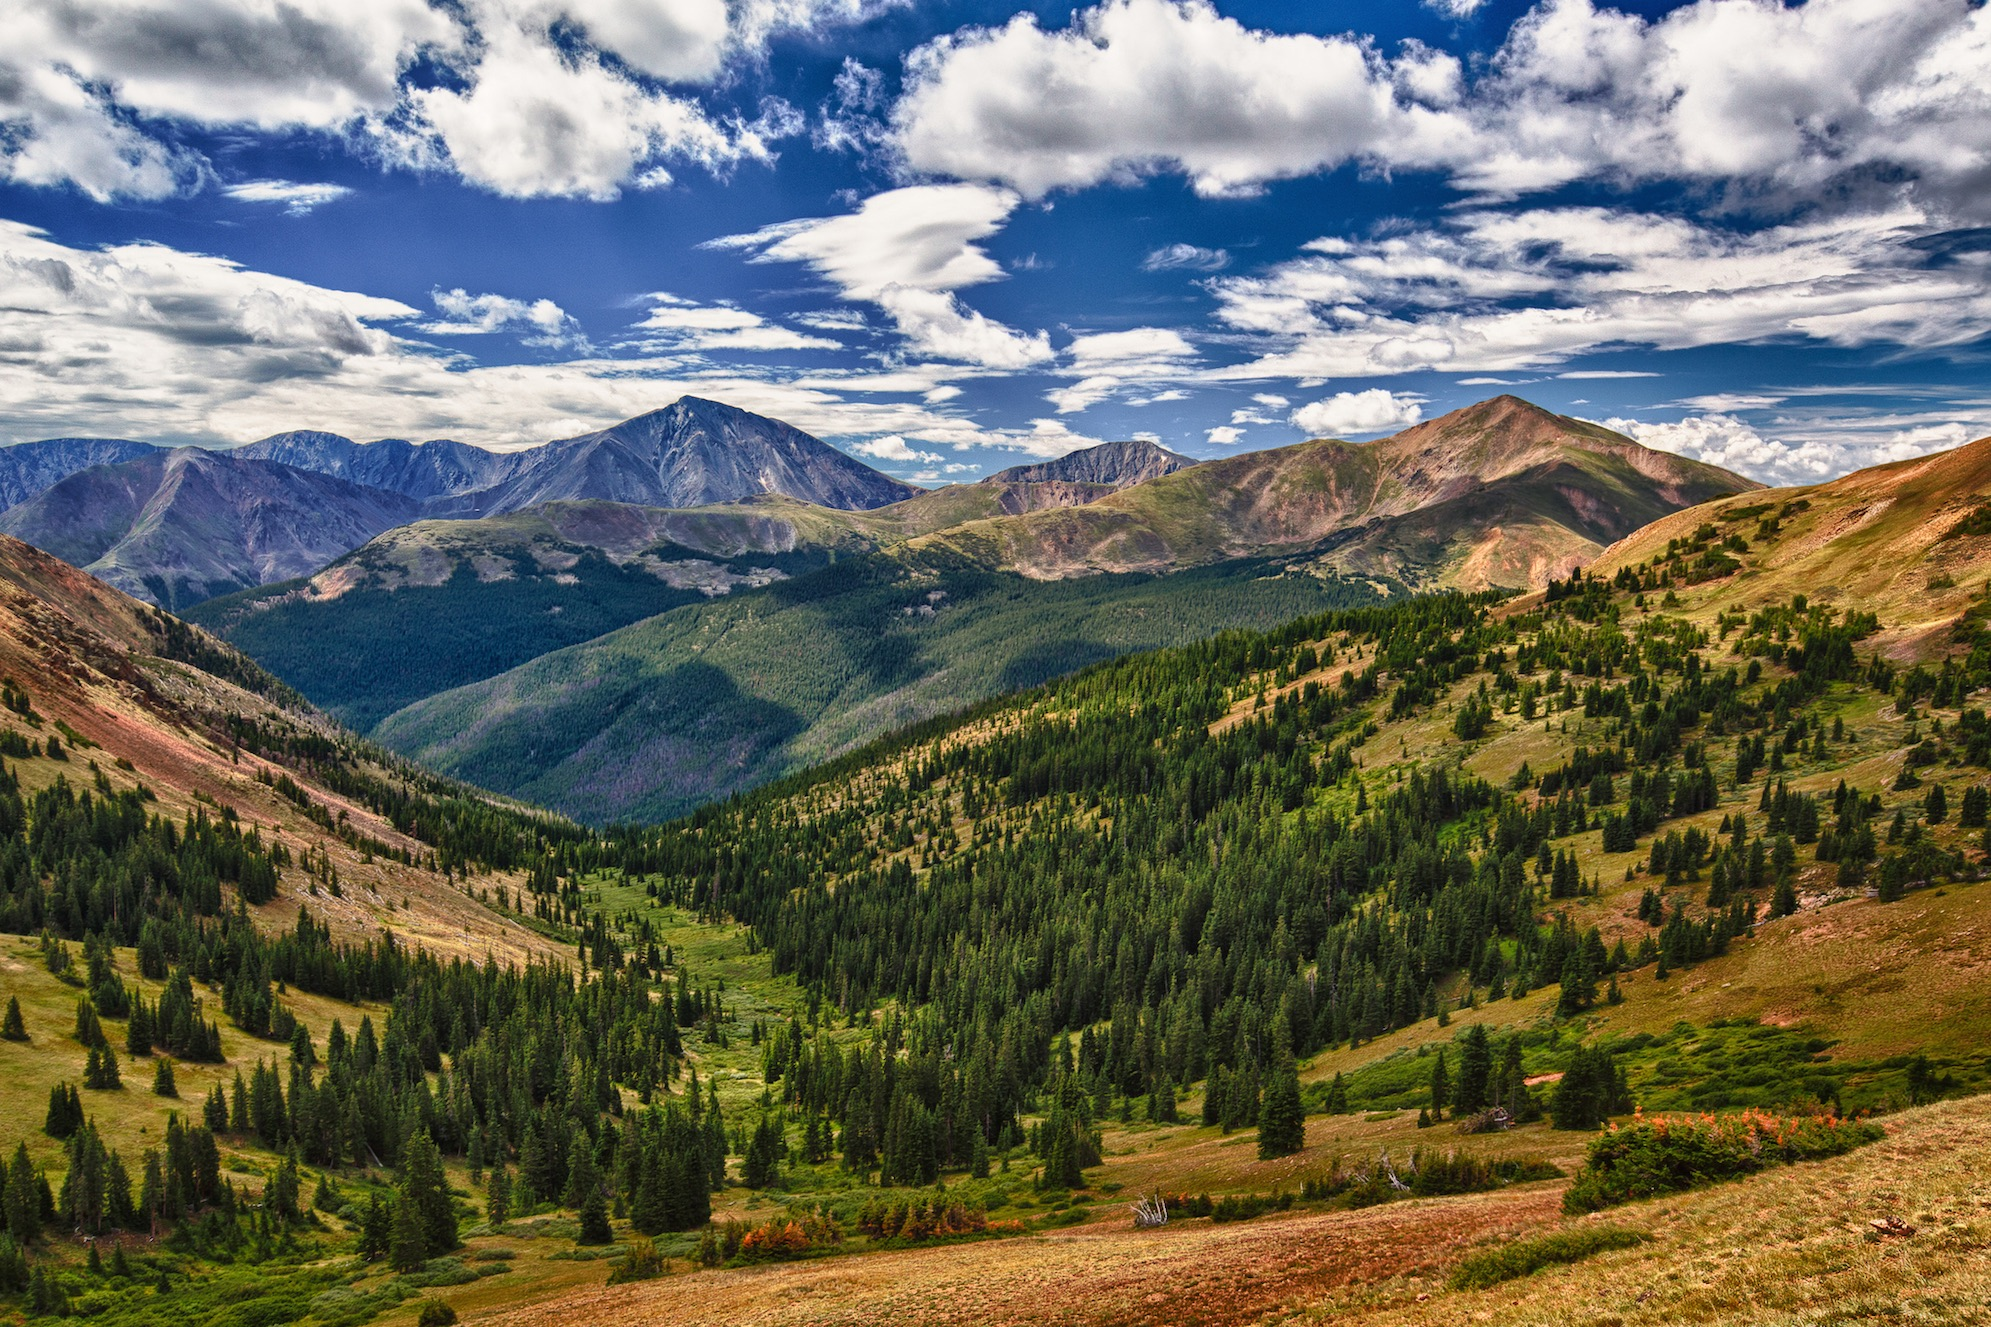 Watrous Gulch, Colorado. By John B Kalla on Flickr (CC CC BY-NC-ND 2.0)